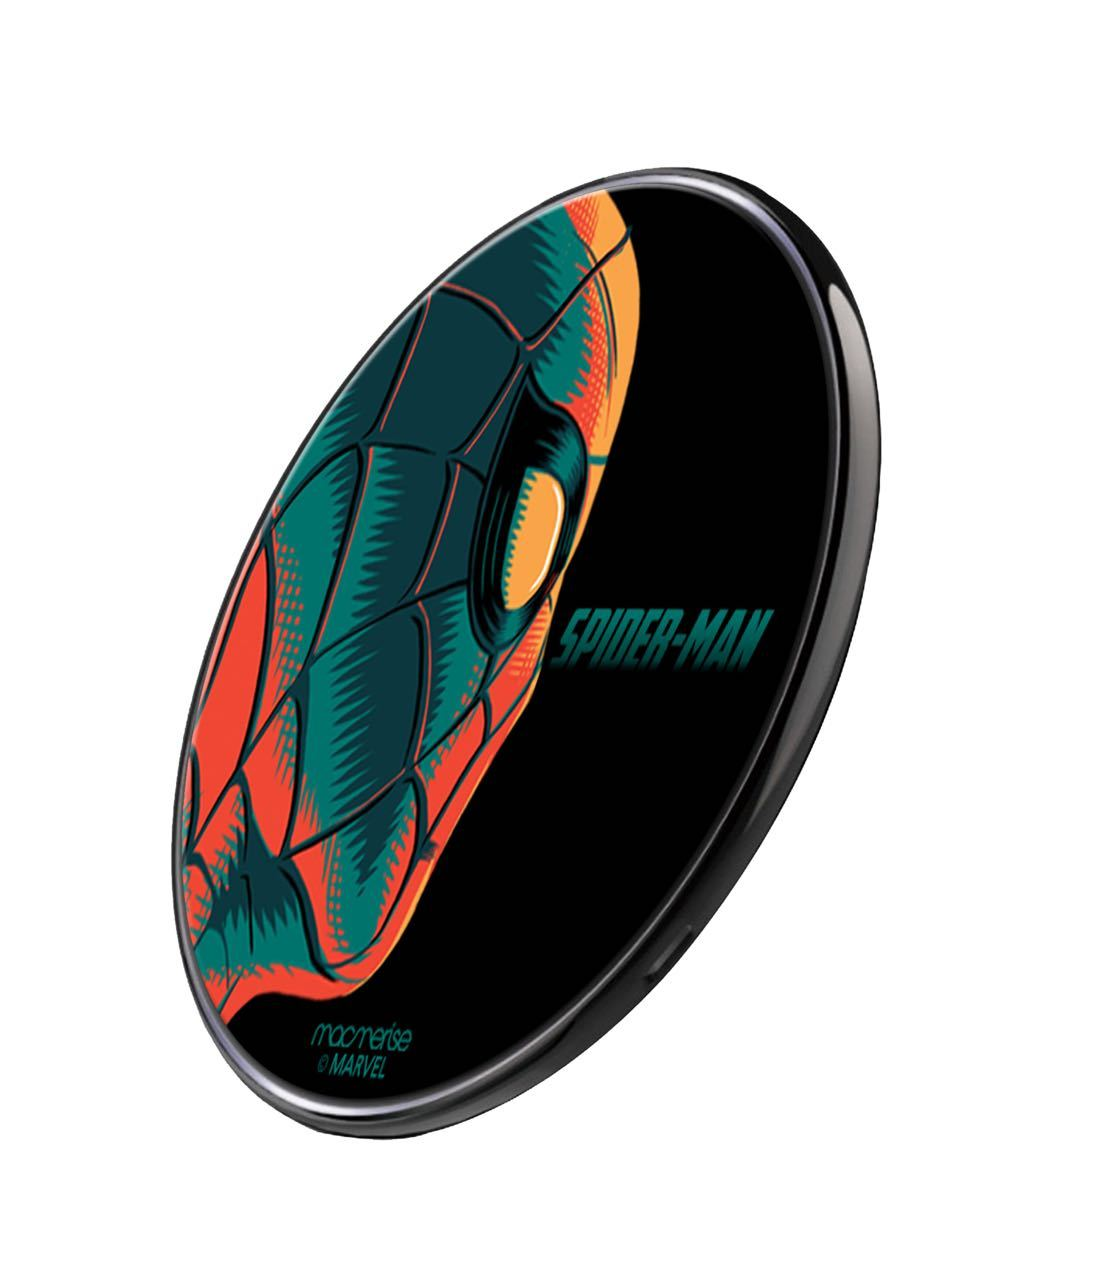 Illuminated Spiderman Wireless Charger by Macmerise